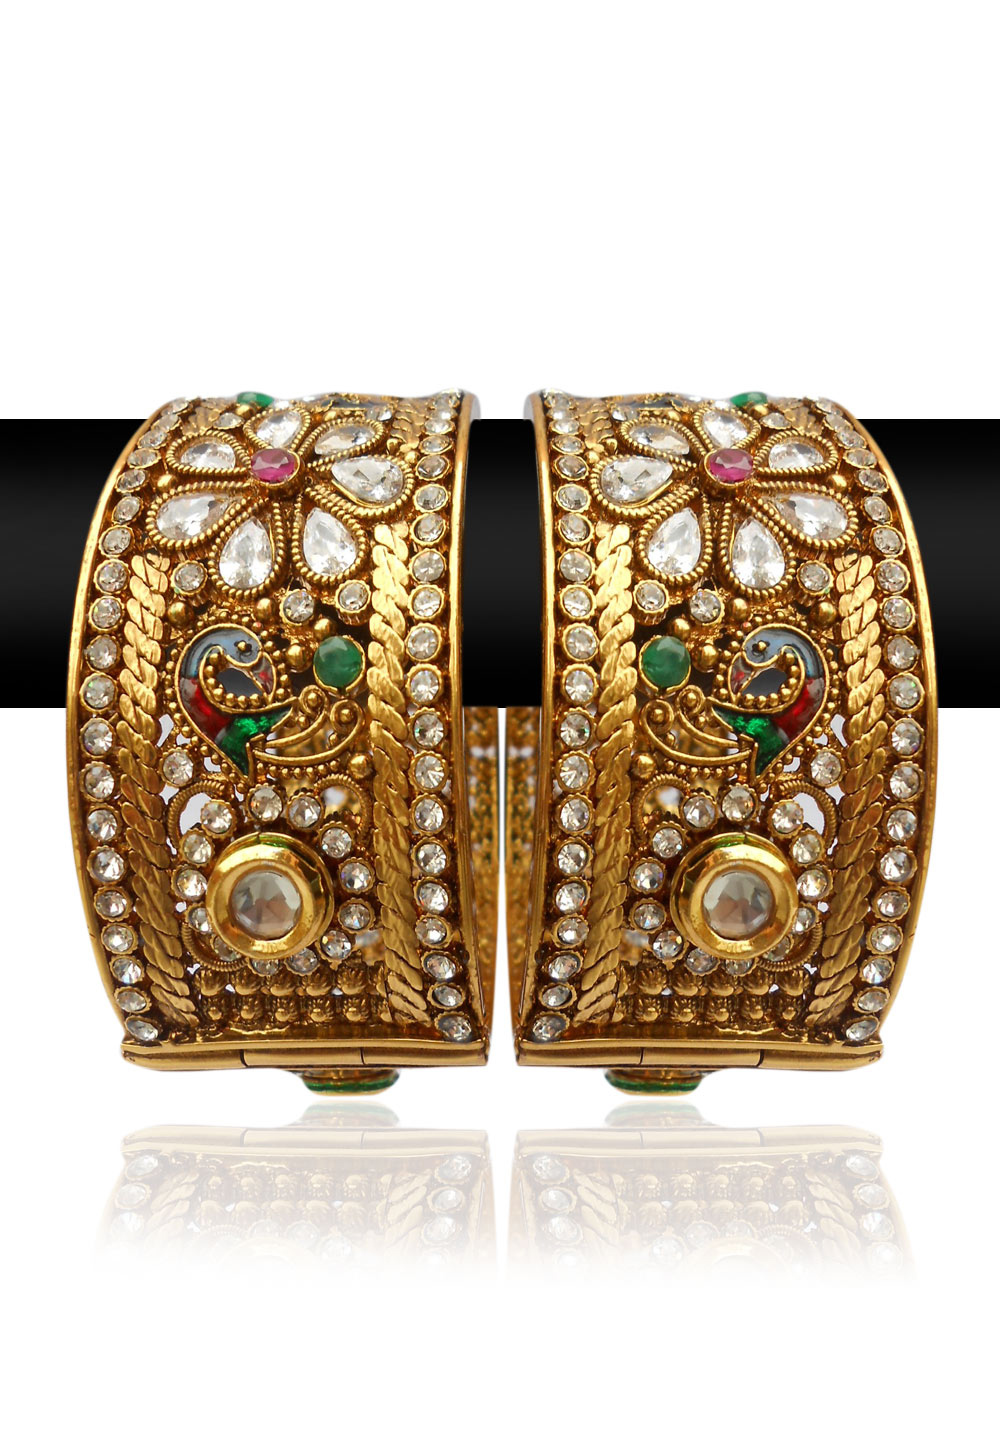 A Stone Studded Adjustable Bangle Set in Red, Green and White (Image: Utsavfashion.com)